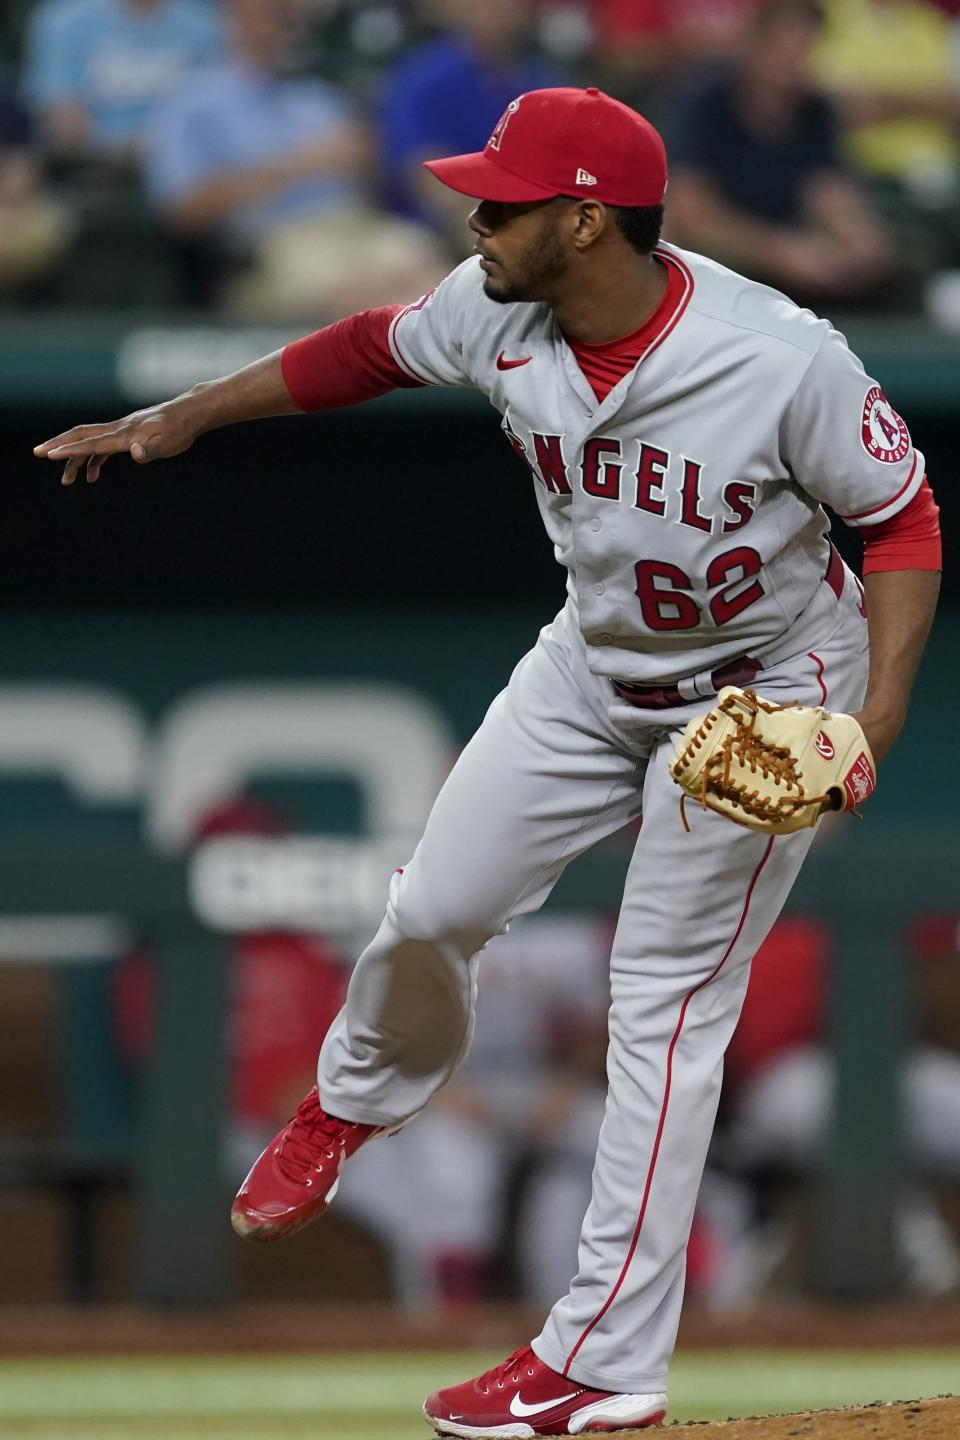 Los Angeles Angels relief pitcher Oliver Ortega follows through on his delivery to the Texas Rangers in the third inning of a baseball game in Arlington, Texas, Tuesday, Sept. 28, 2021. (AP Photo/Tony Gutierrez)